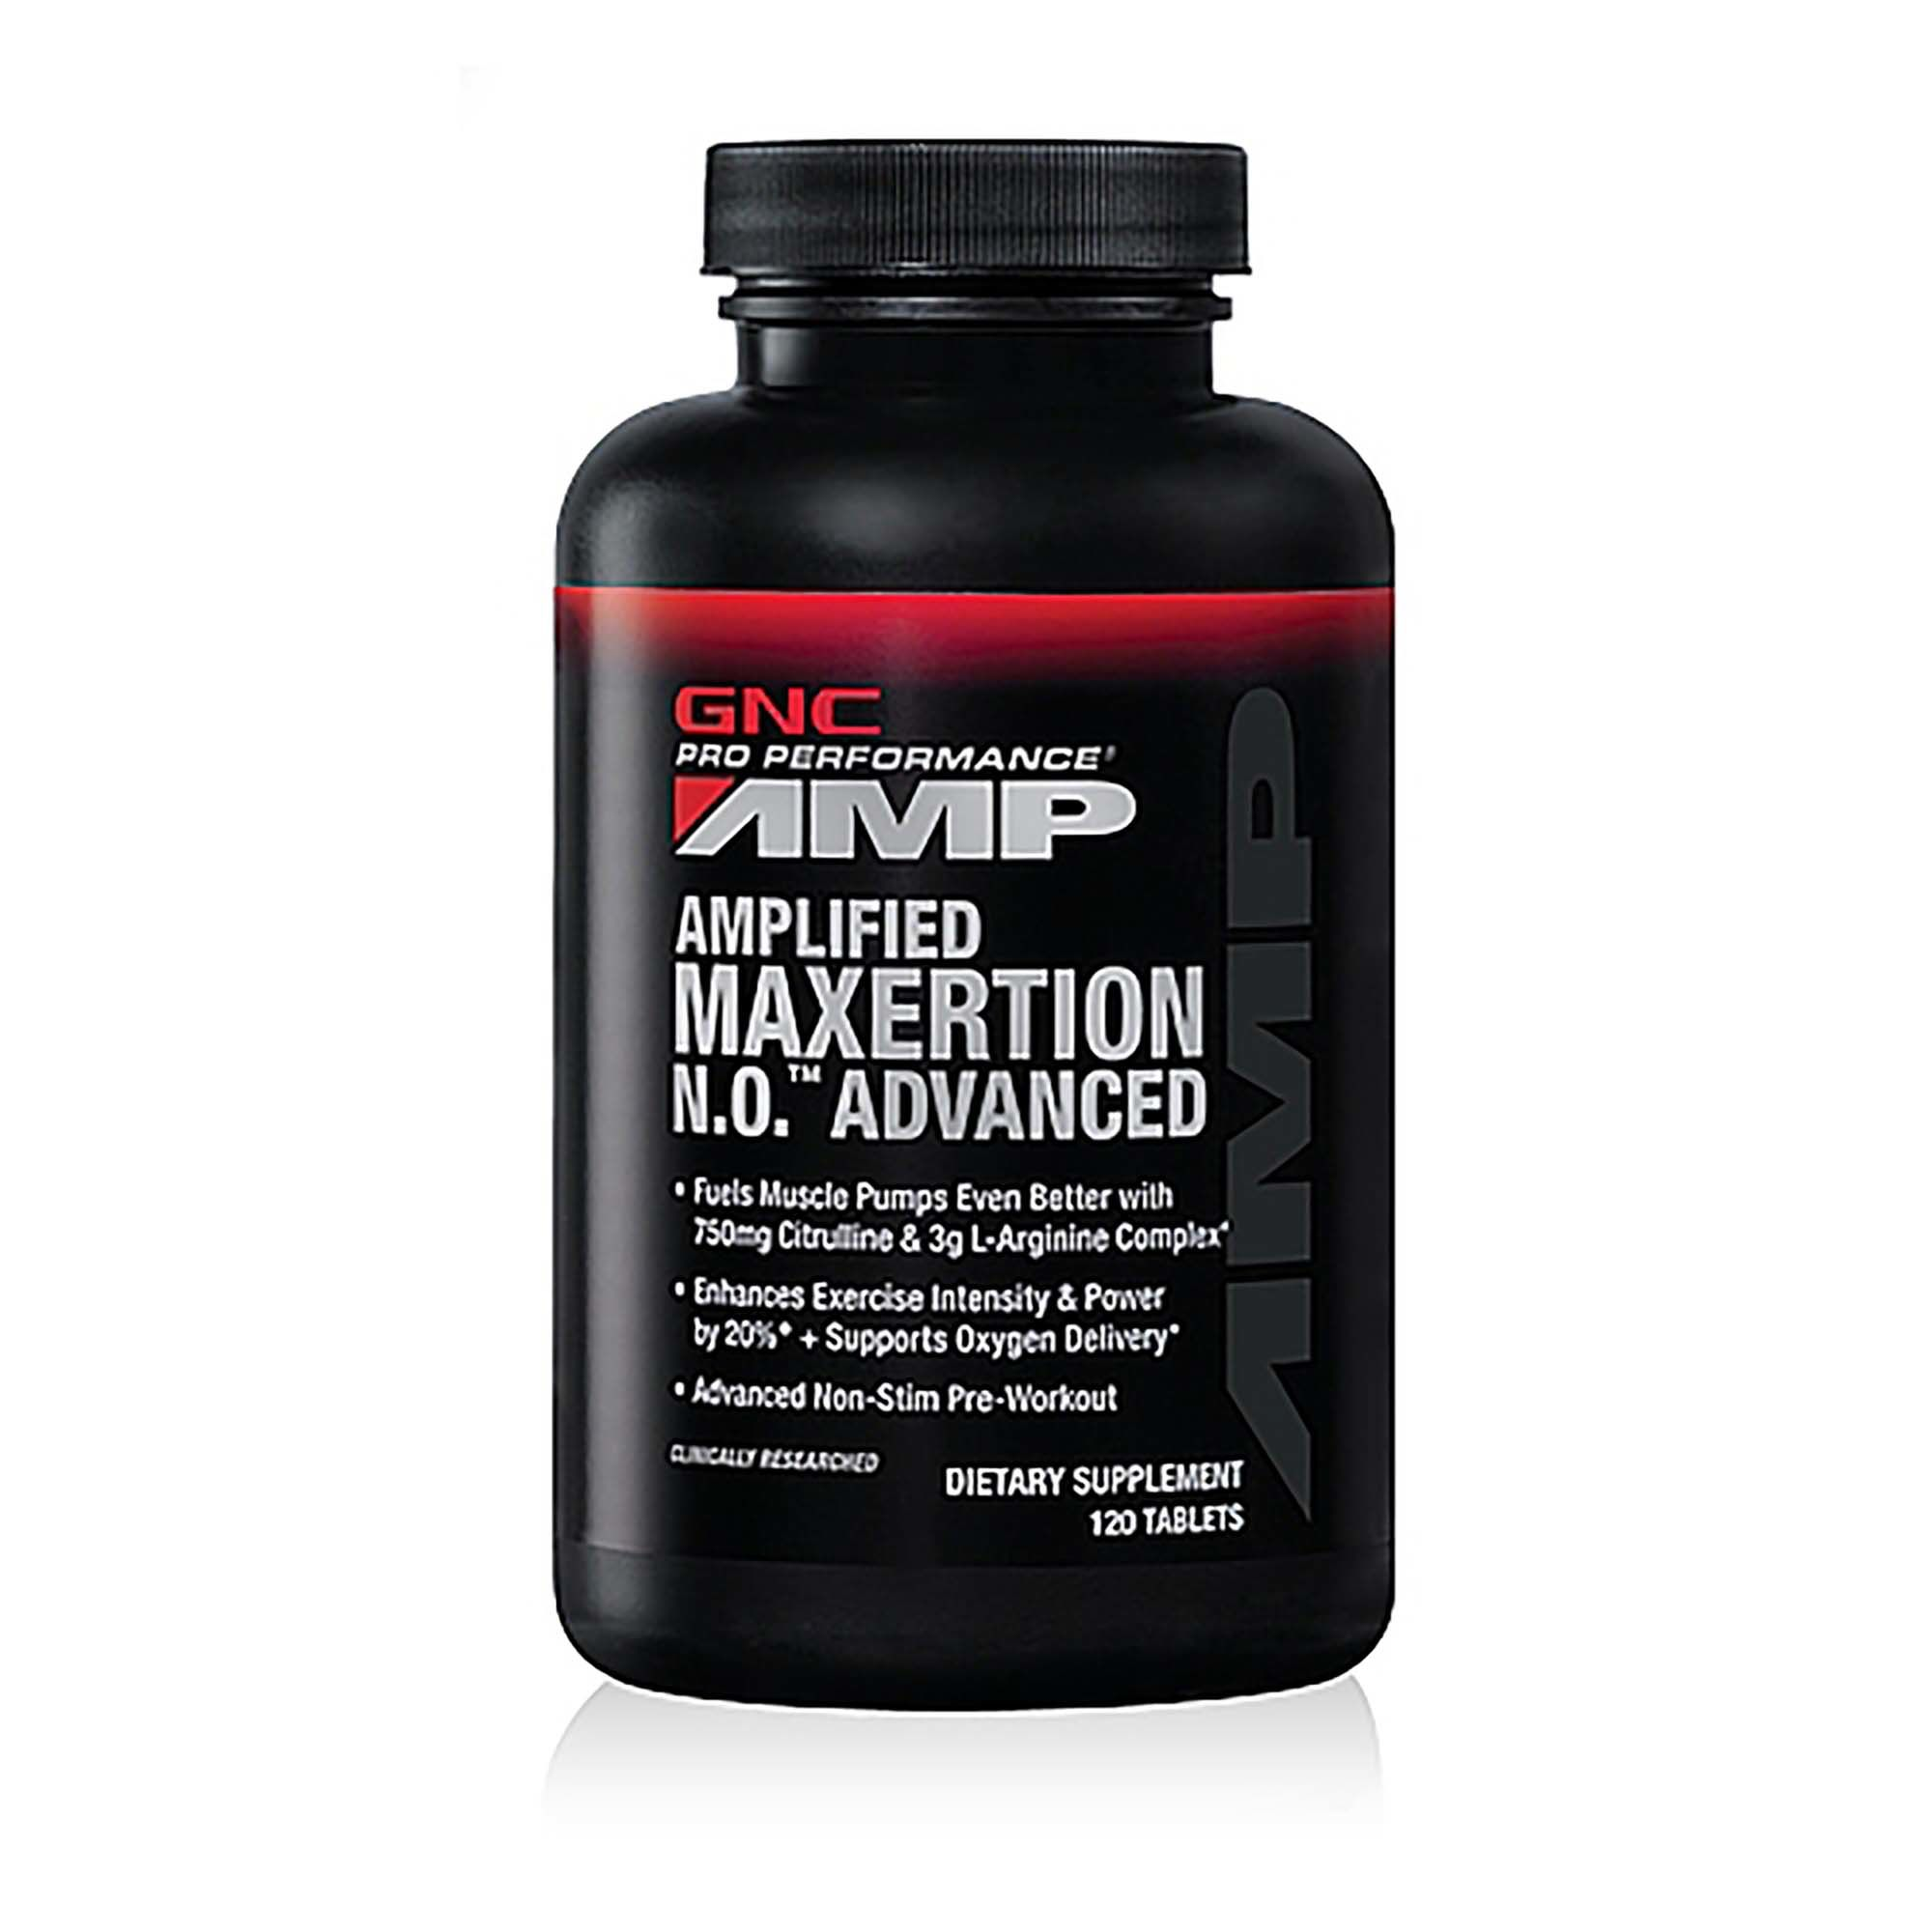 Gnc Pro Performance Amp Amplified Maxertion N O Advanced